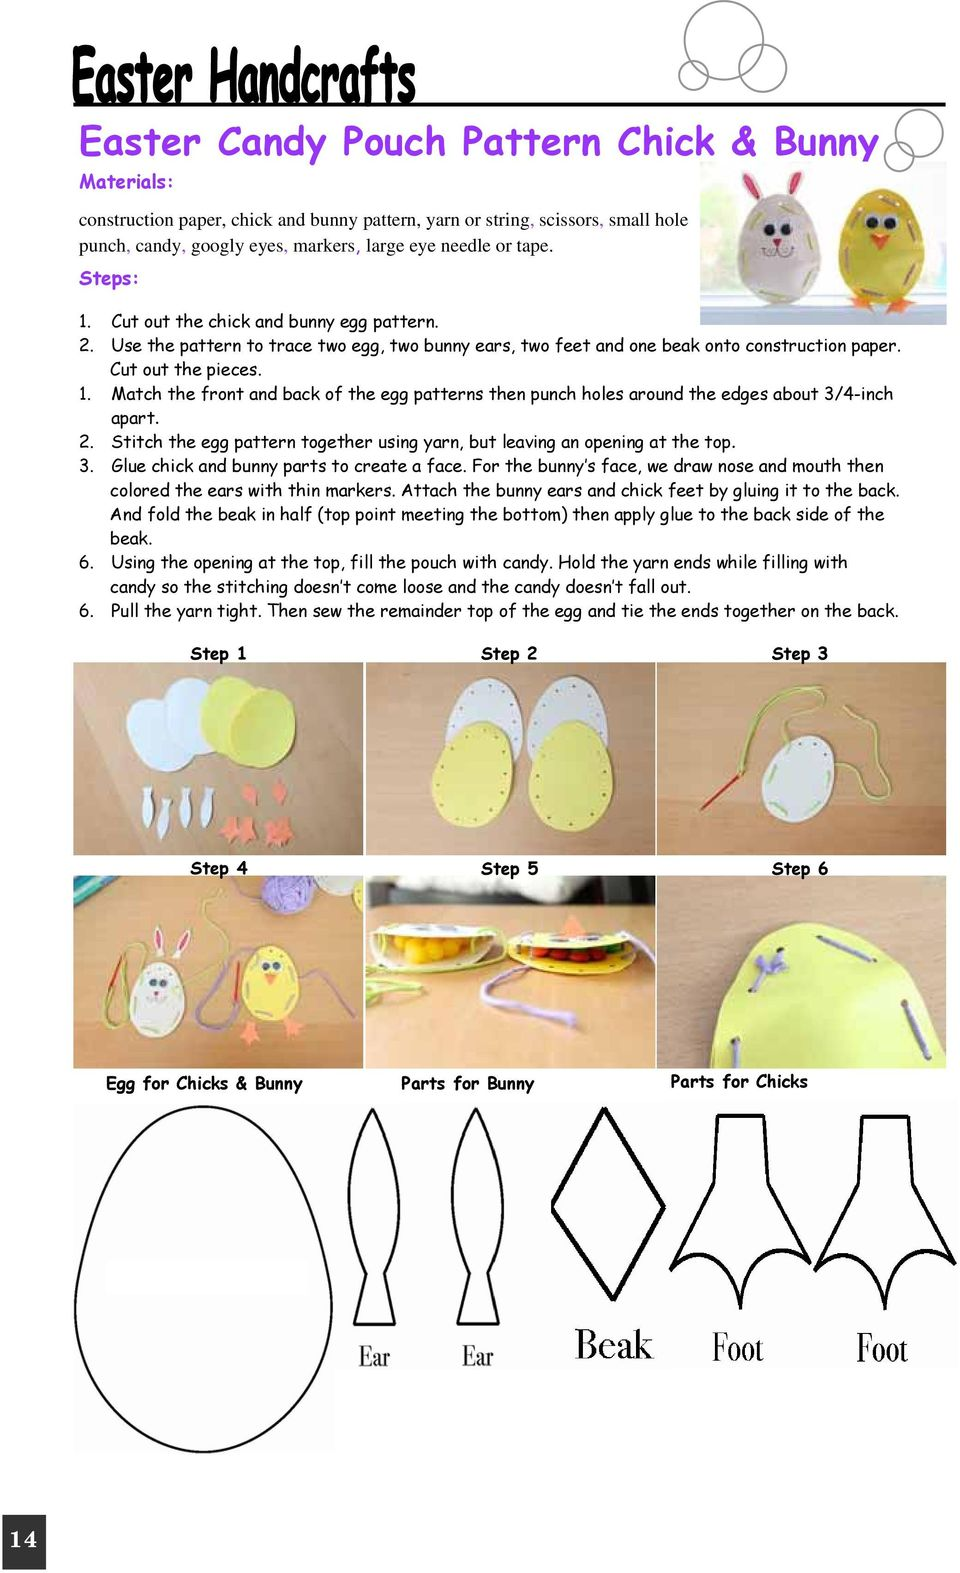 2. Stitch the egg pattern together using yarn, but leaving an opening at the top. 3. Glue chick and bunny parts to create a face.